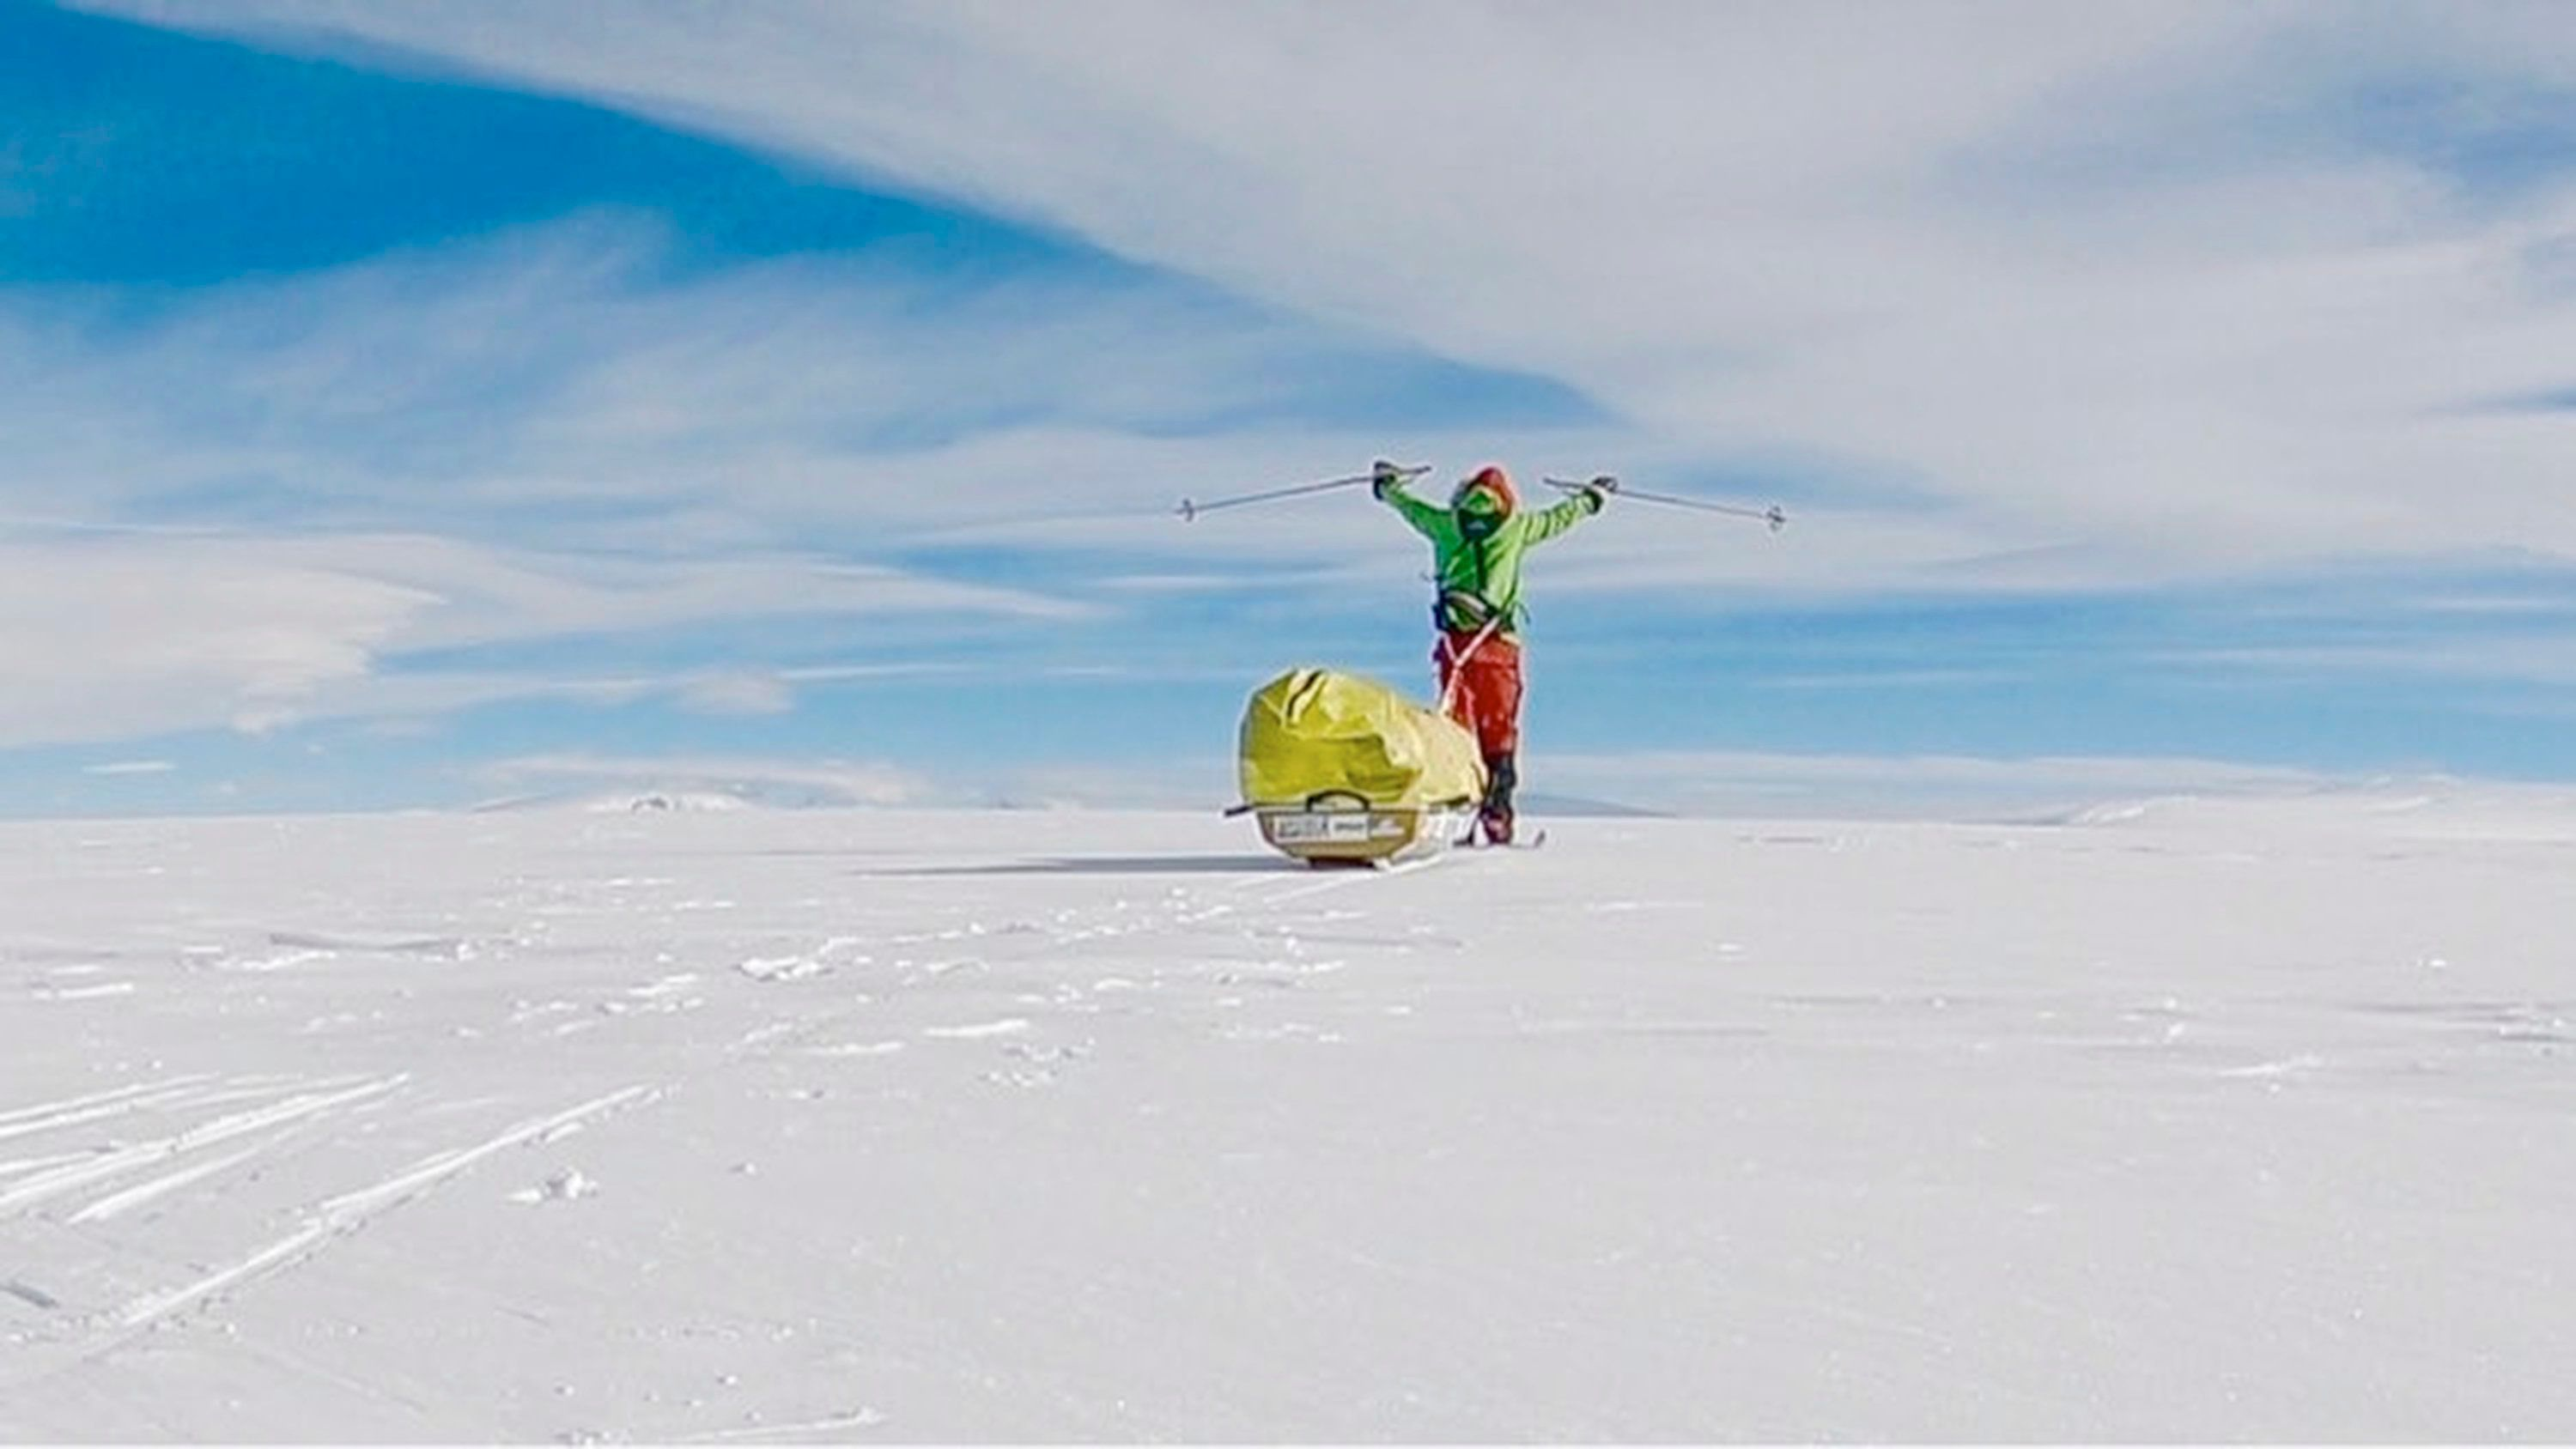 In this photo provided by Colin O'Brady, of Portland., Ore., he poses for a photo while traveling across Antarctica on Wednesday, Dec. 26, 2018. He has become the first person to traverse Antarctica alone without any assistance. O'Brady finished the 932-mile (1,500-kilometer) journey across the continent in 54 days, lugging his supplies on a sled as he skied in bone-chilling temperatures. (Colin O'Brady via AP)